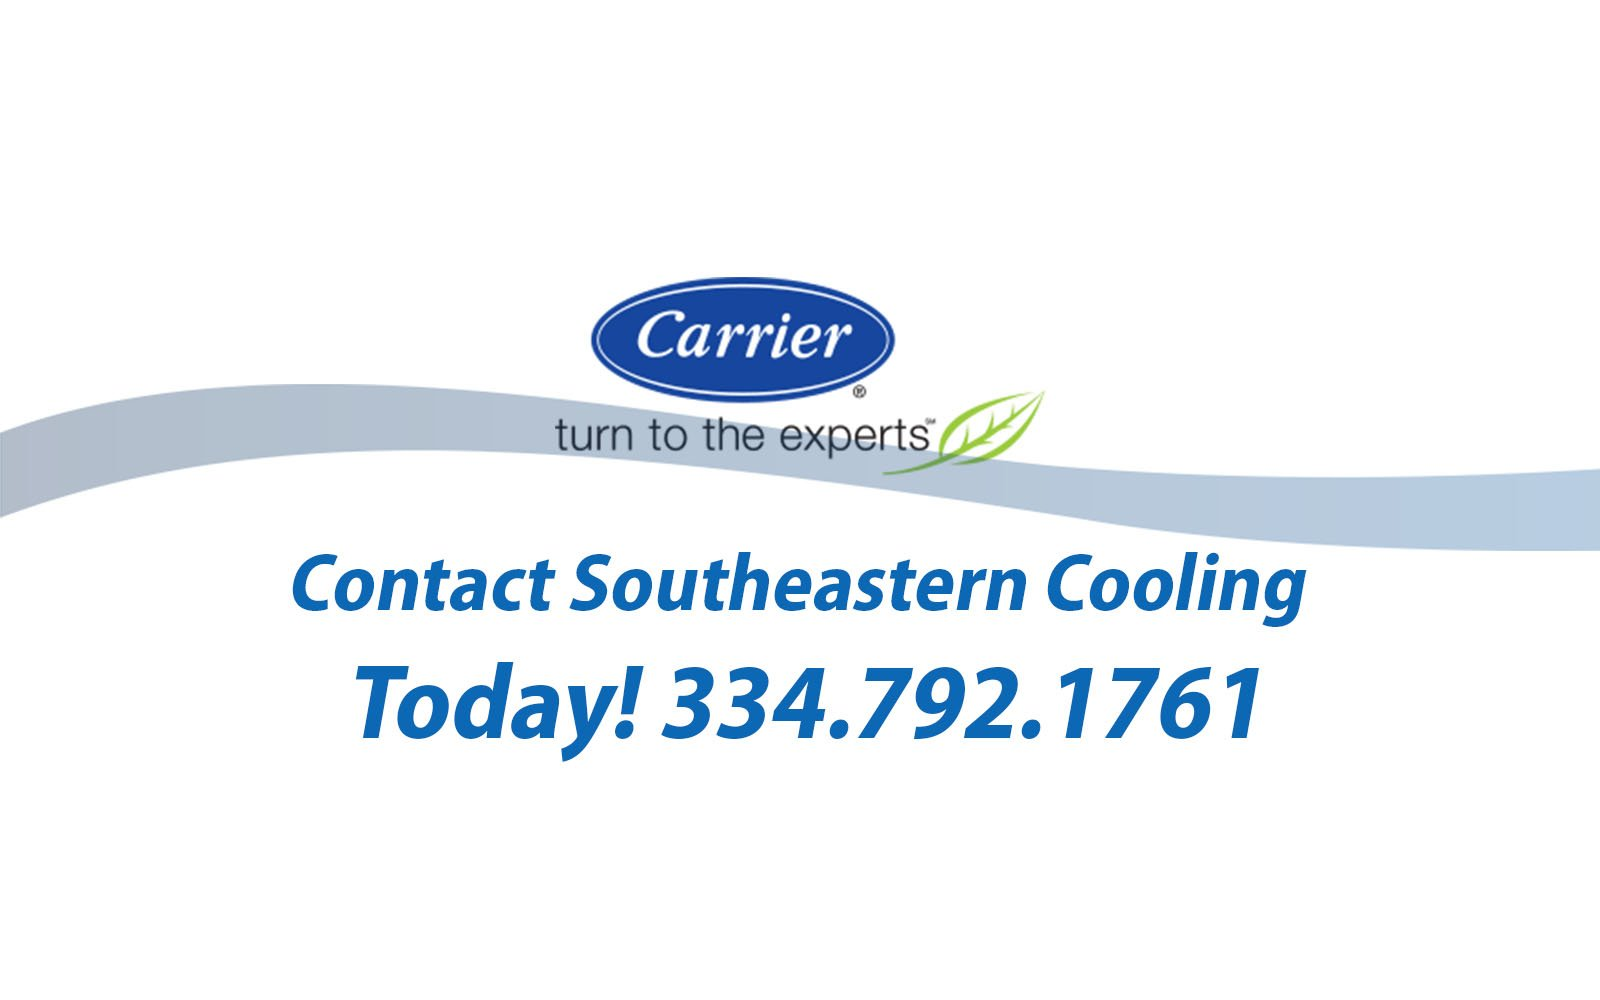 Contact Southeastern Cooling